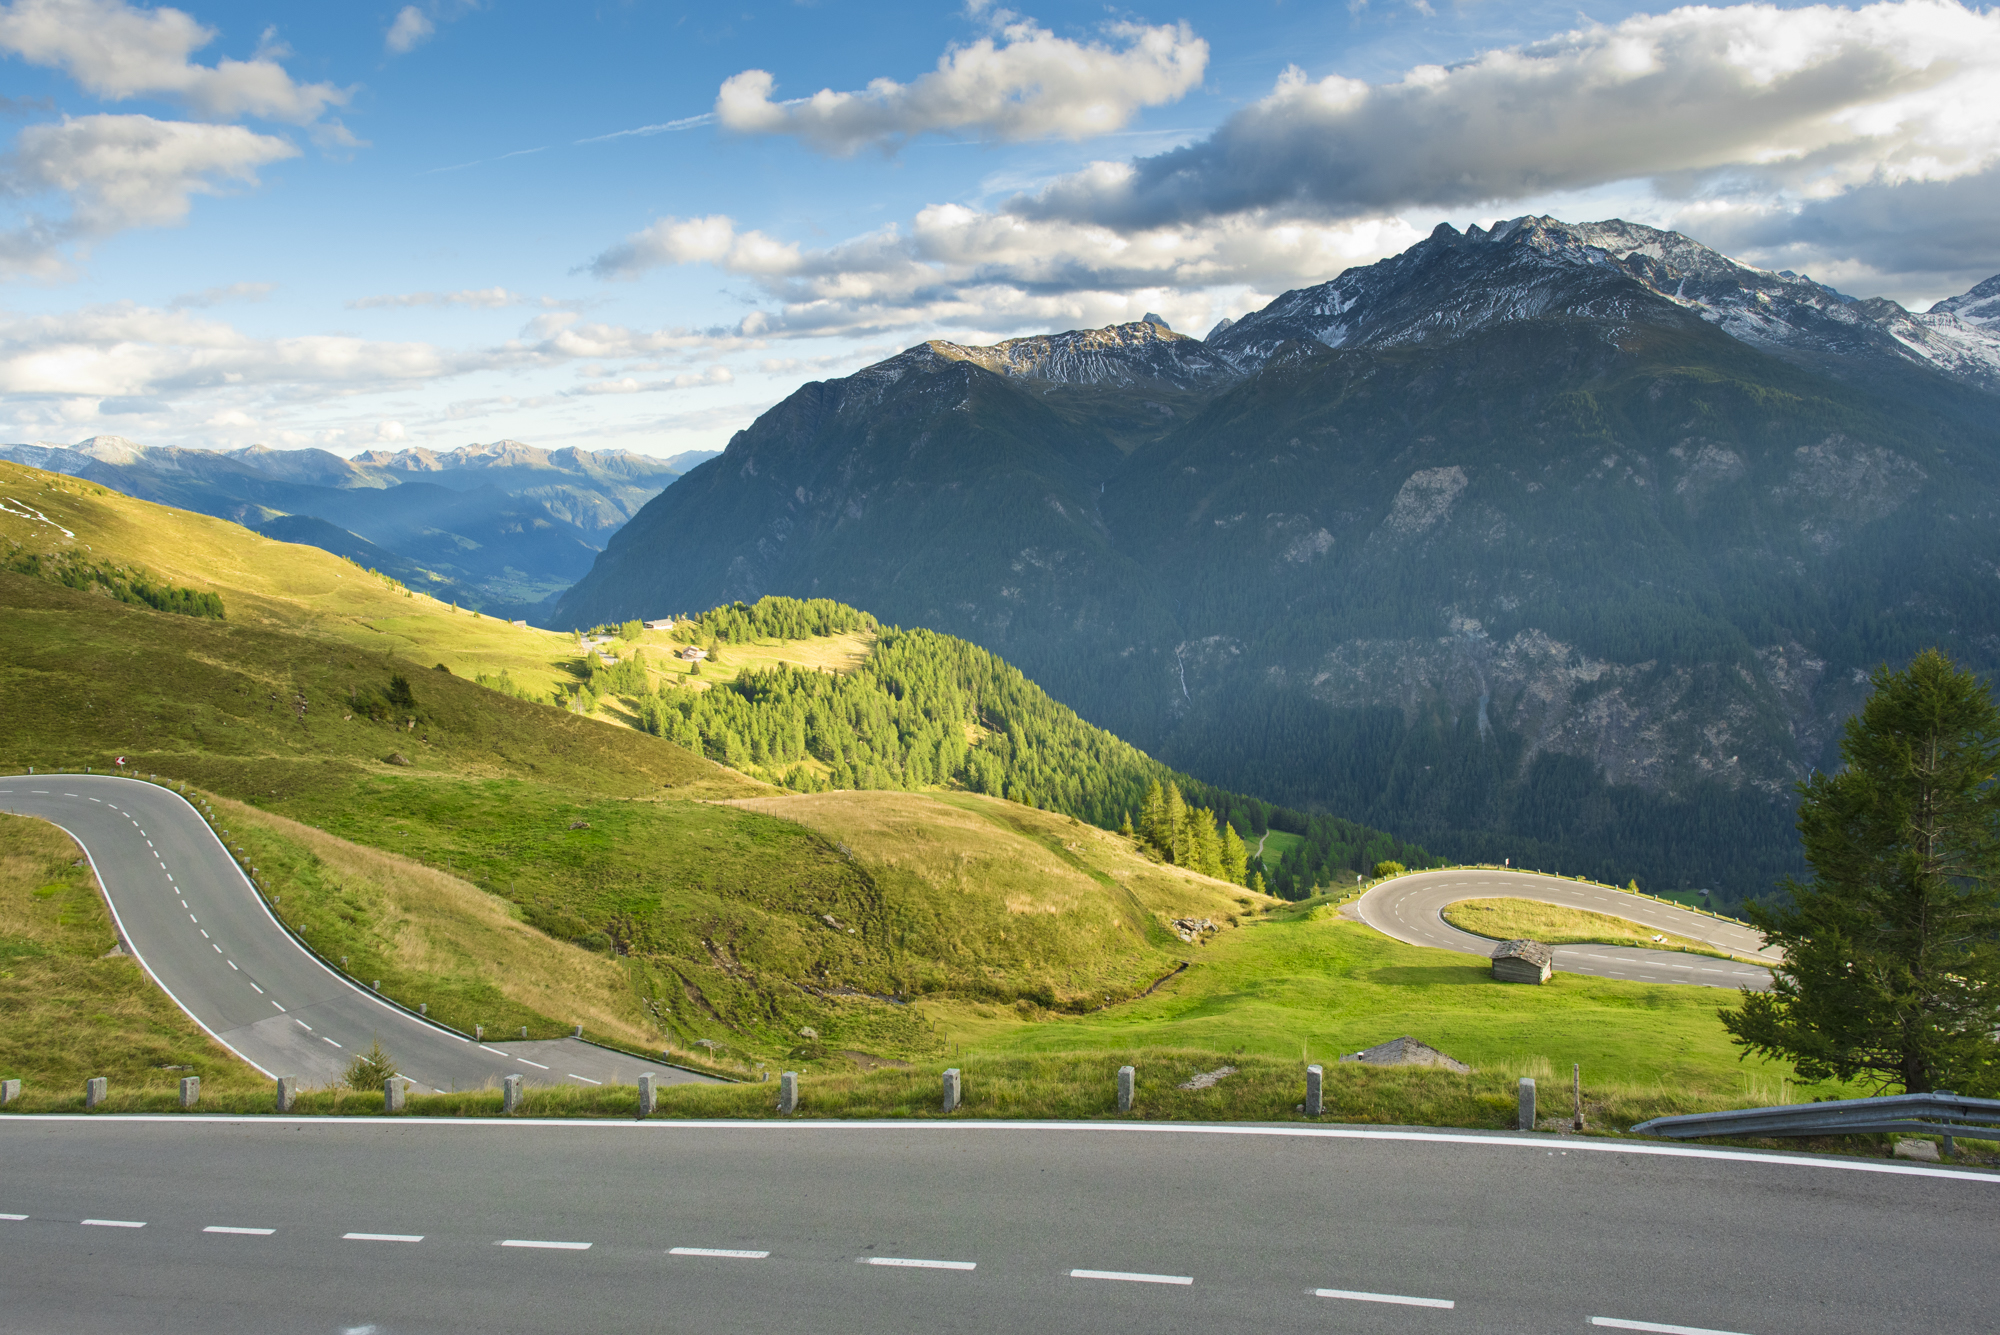 Driving up the Grossglockner